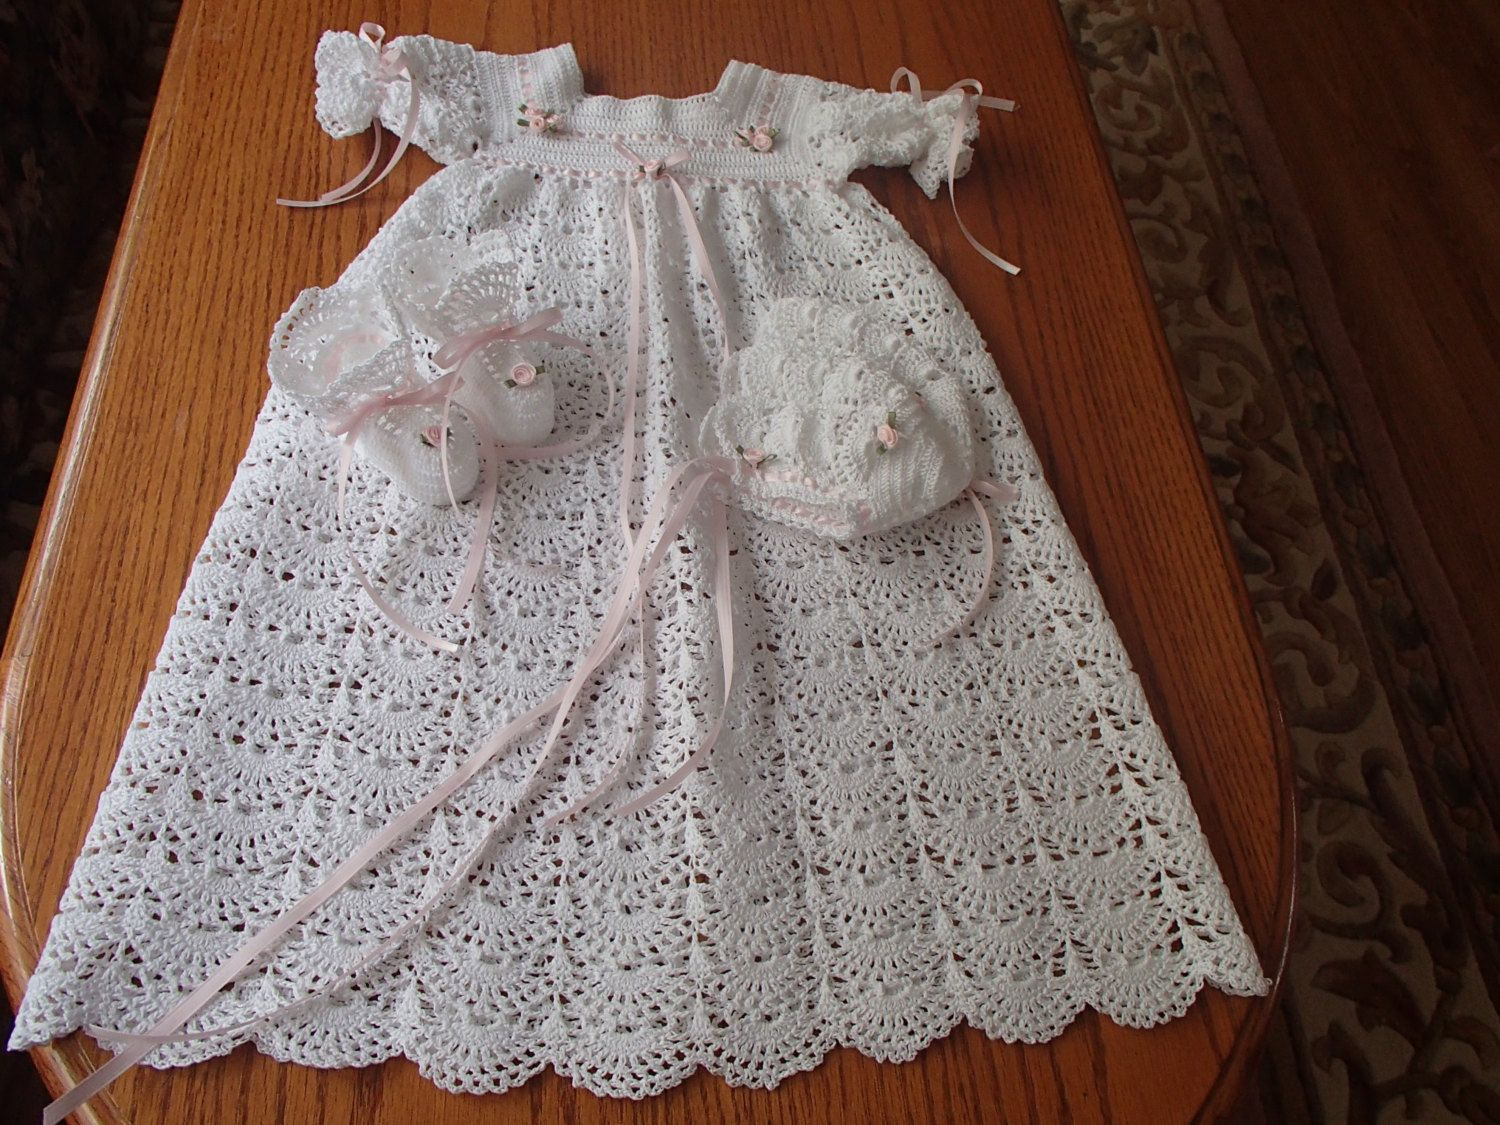 Victorian+Crocheted+Baby+Christening+Gown+Dress+by+crochetby51bebe,+$75.00